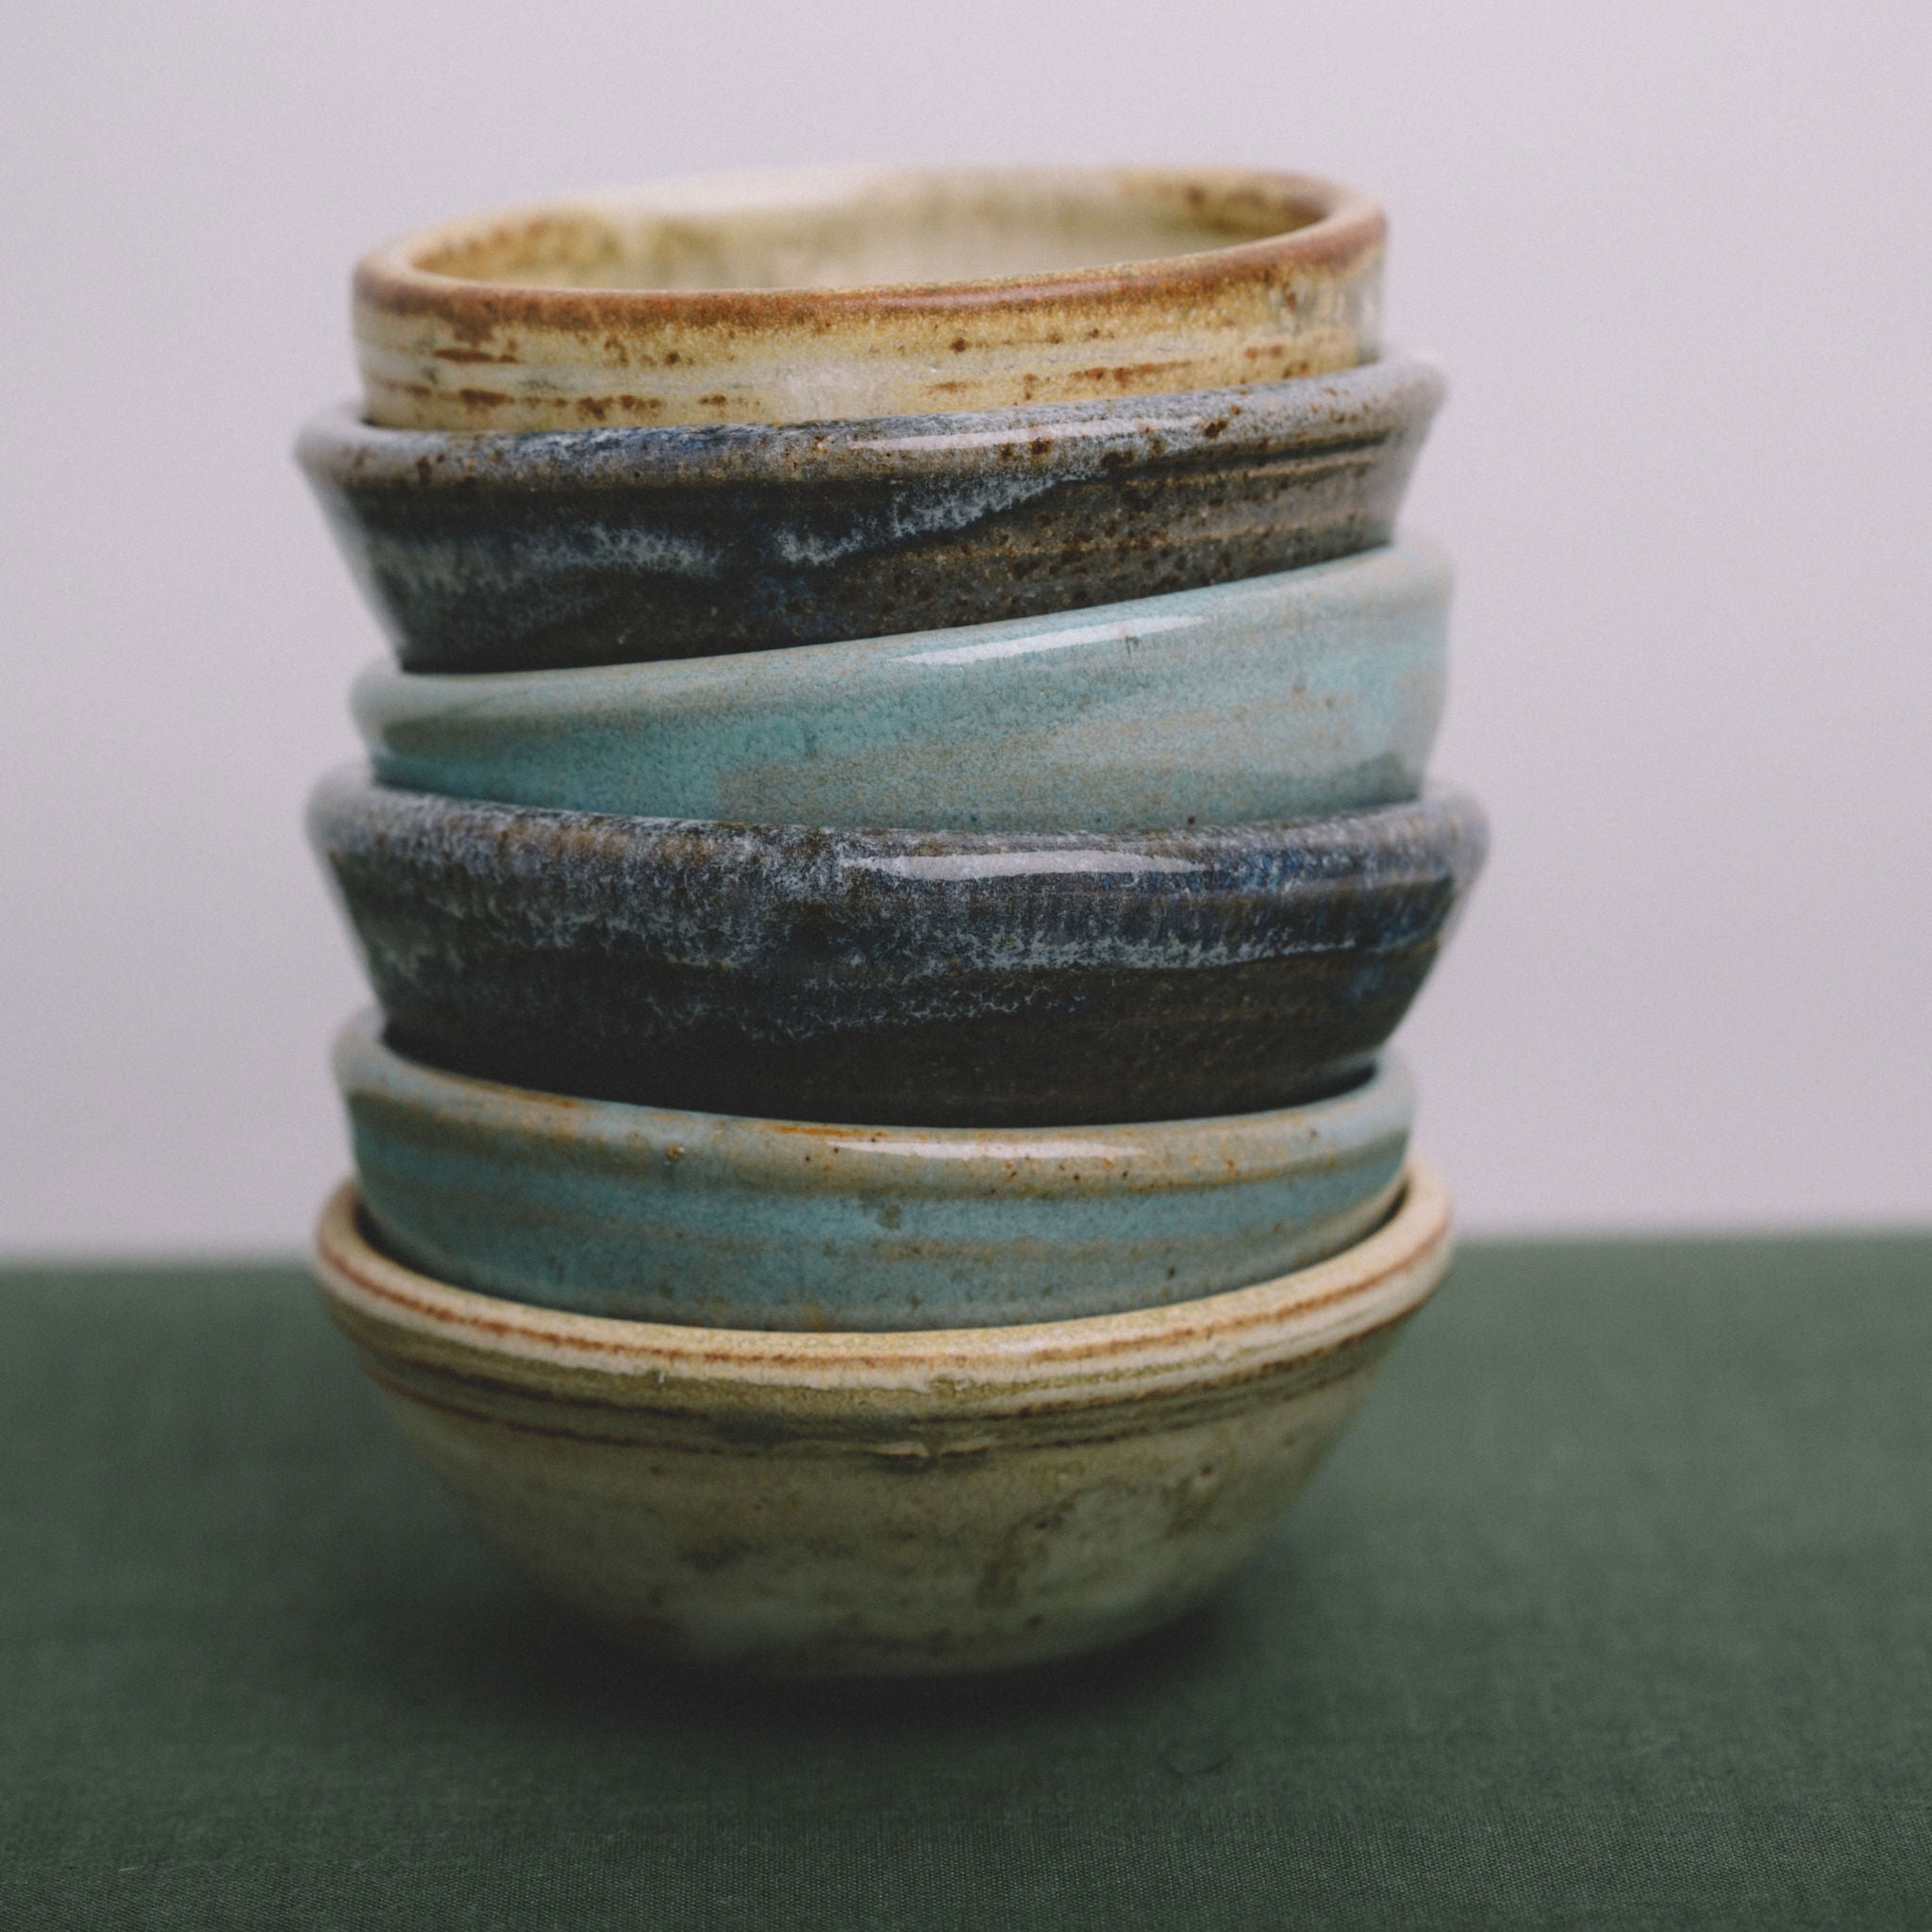 MINI CERAMIC BOWL || MARSHALL CLAY CO.